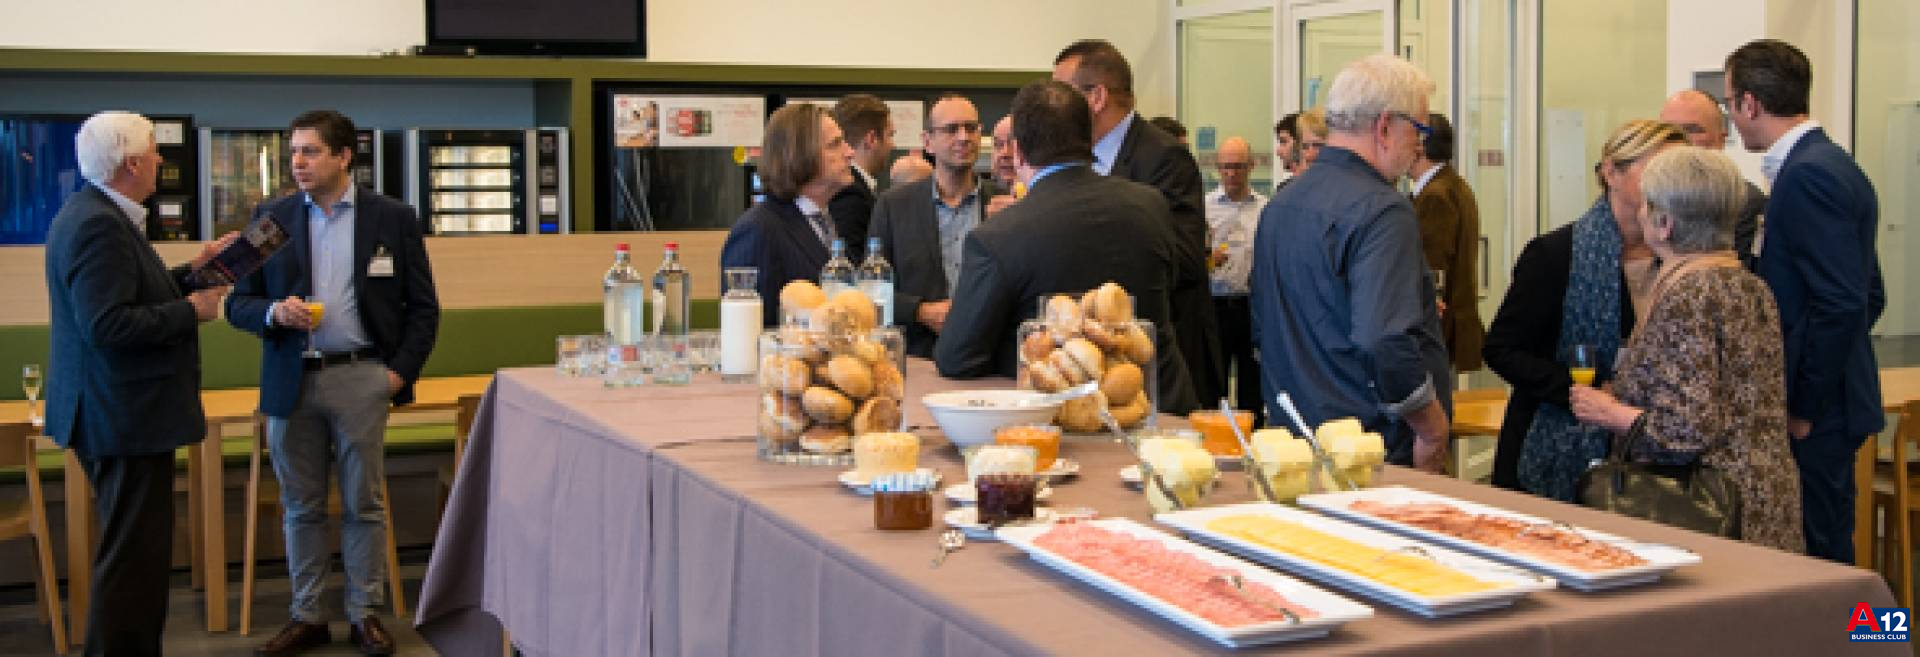 A12 Business Club - Ontbijtvergadering met Alex De Ridder